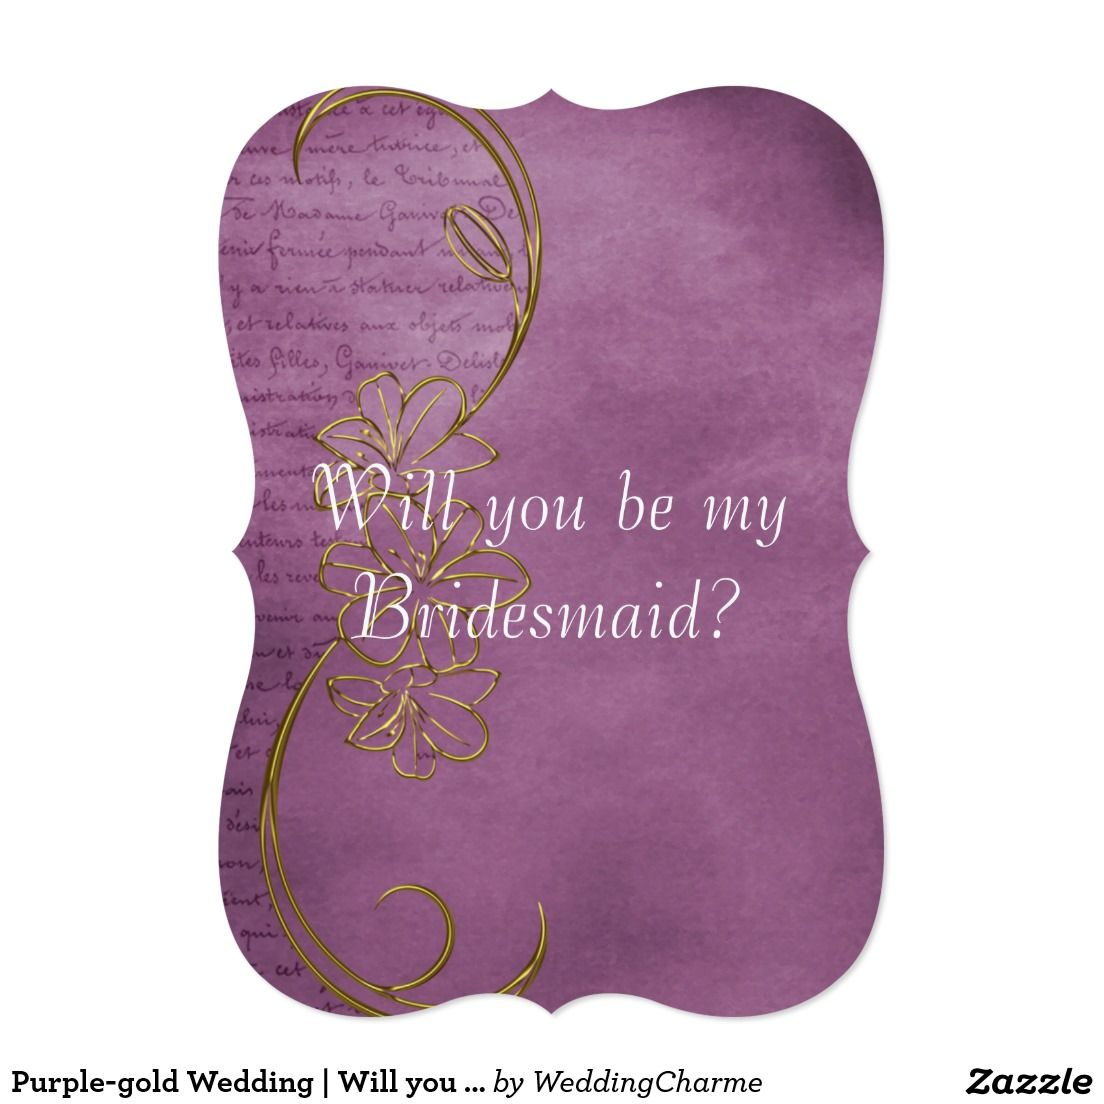 Purple-gold Wedding | Will you be my Bridesmaid